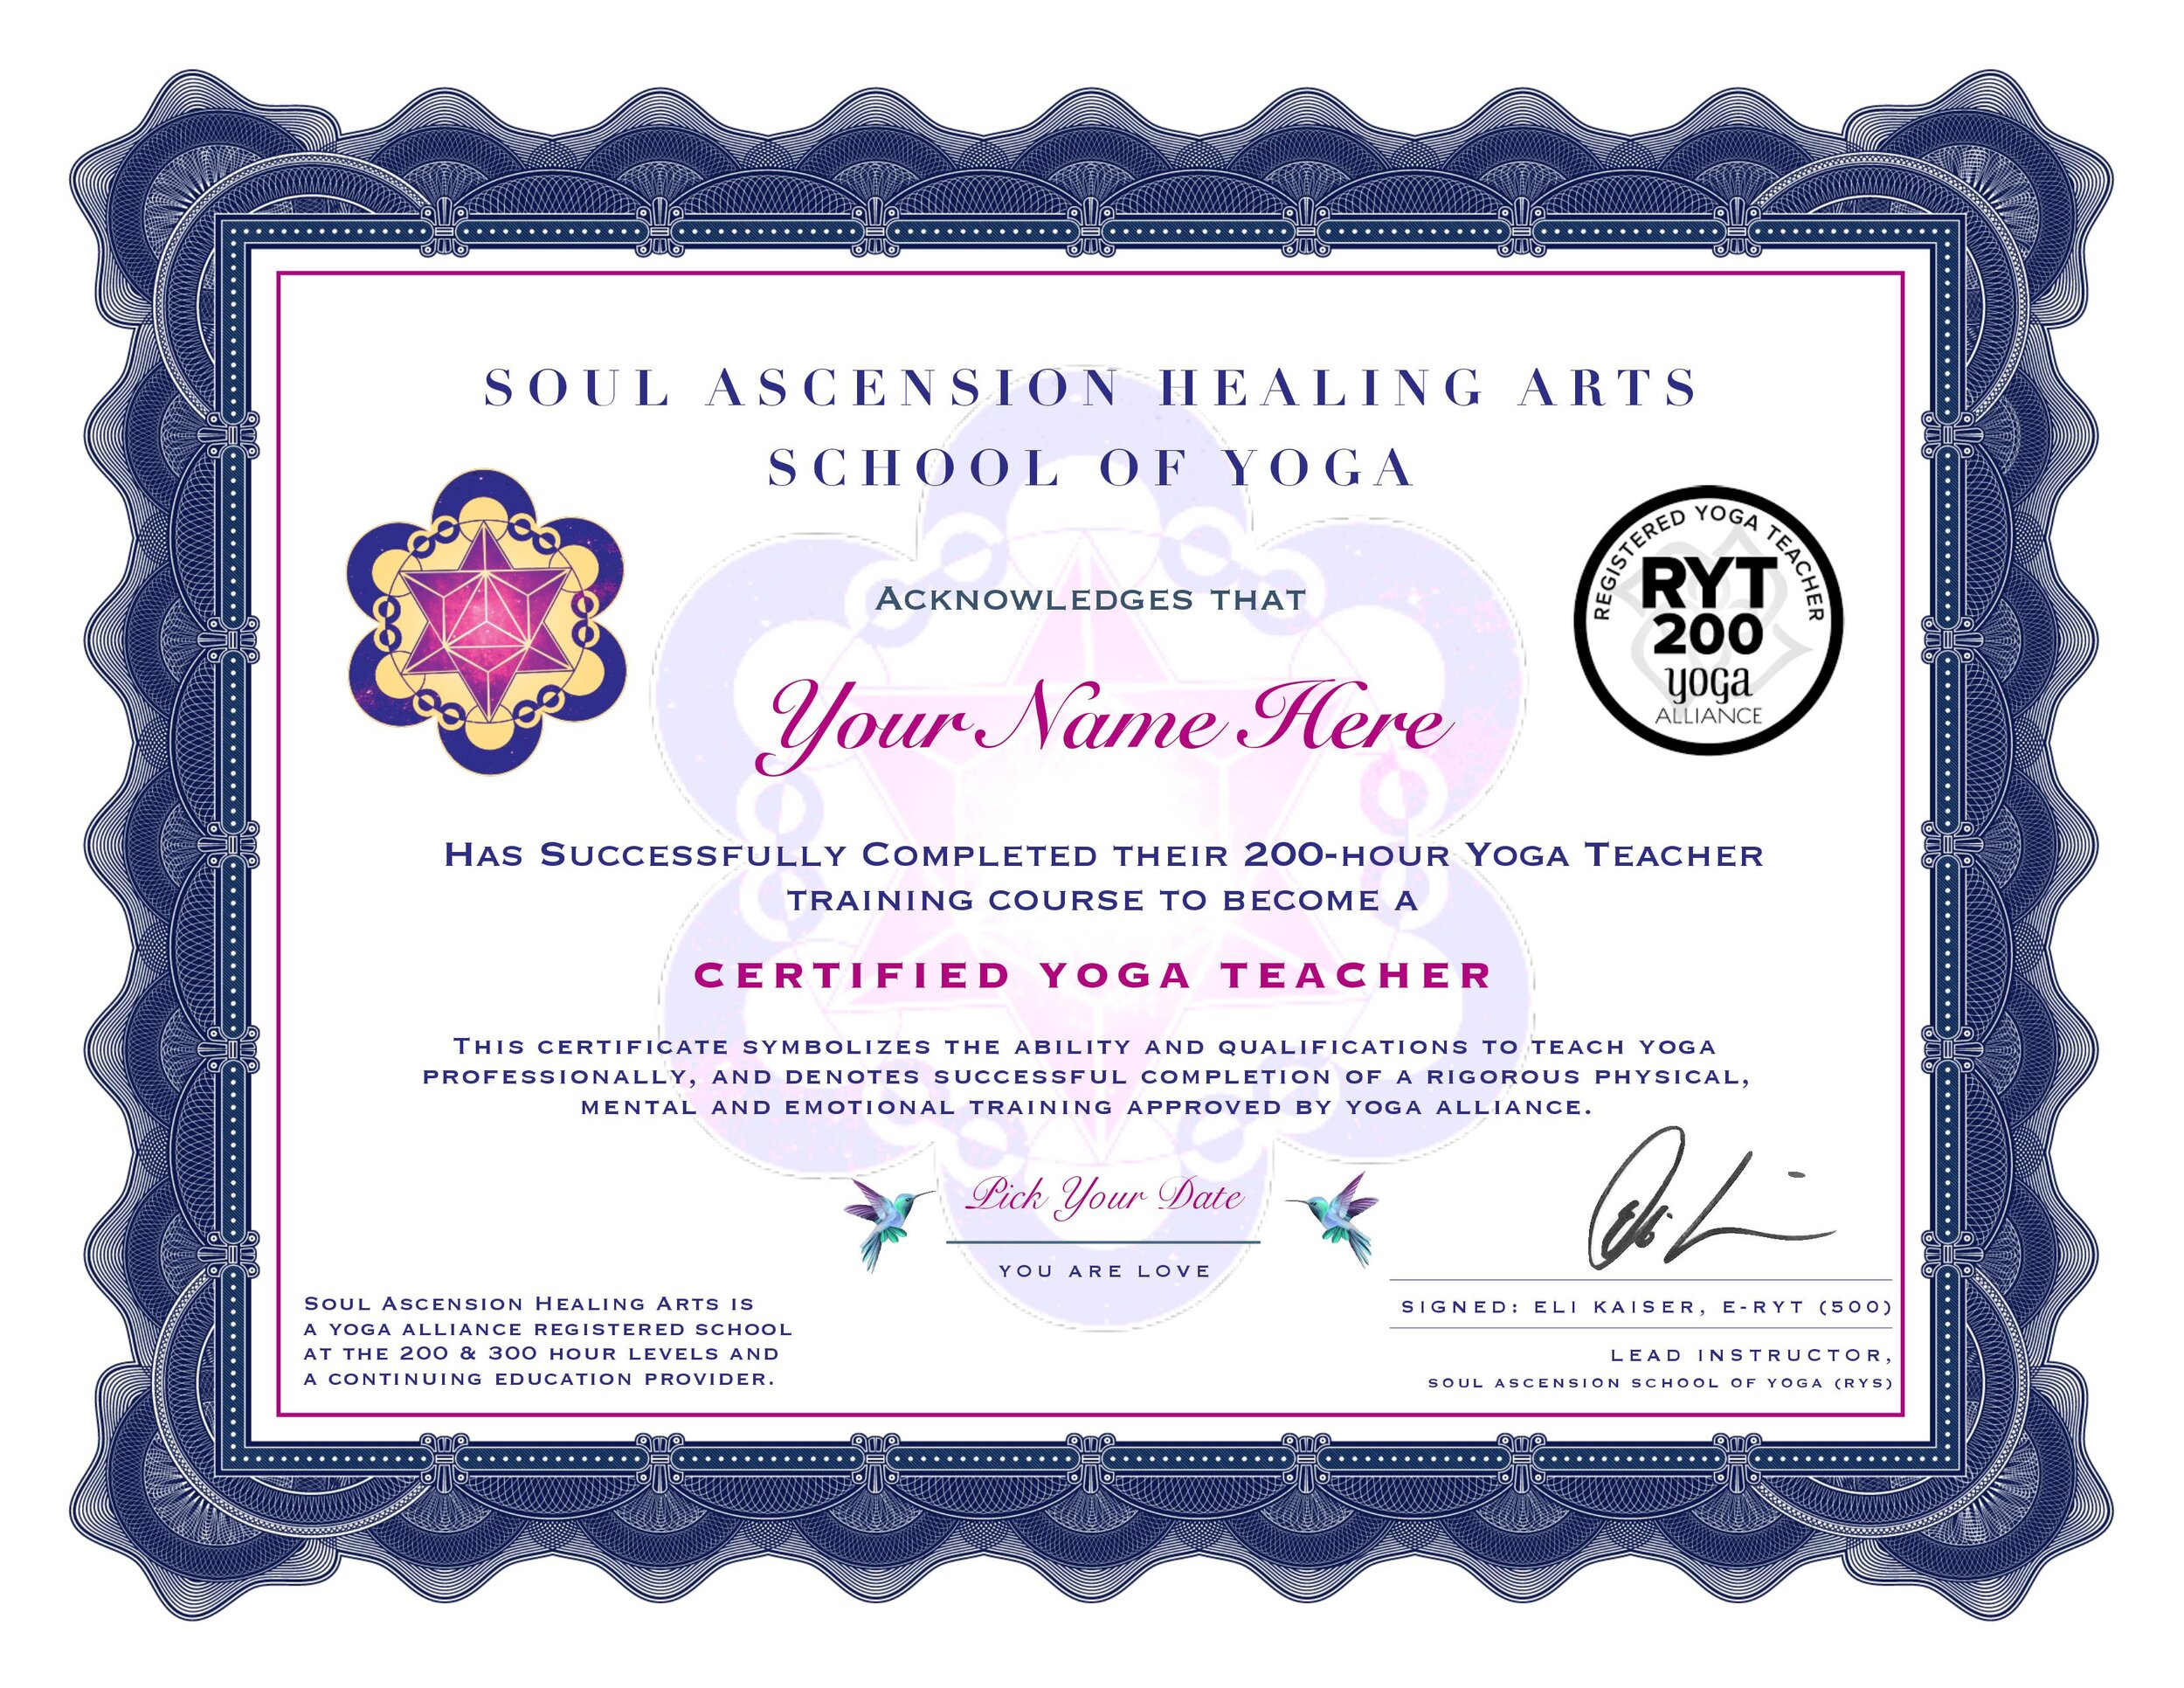 Affordable Online Yoga Teacher Training 200hr Ytt Registered Yoga Alliance School Soul Ascension Healing Arts